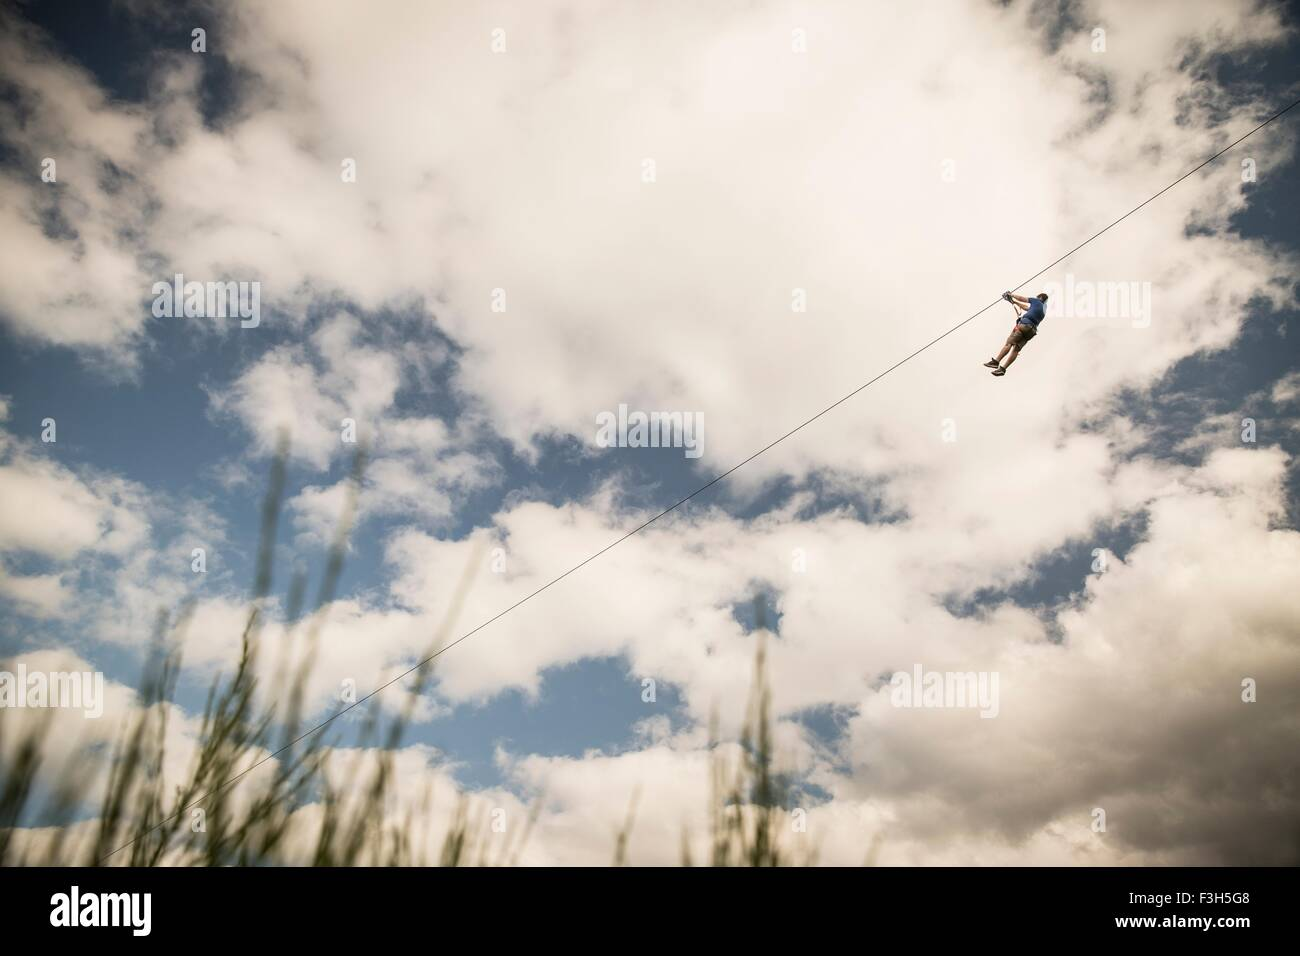 Mature man on zip wire over field - Stock Image